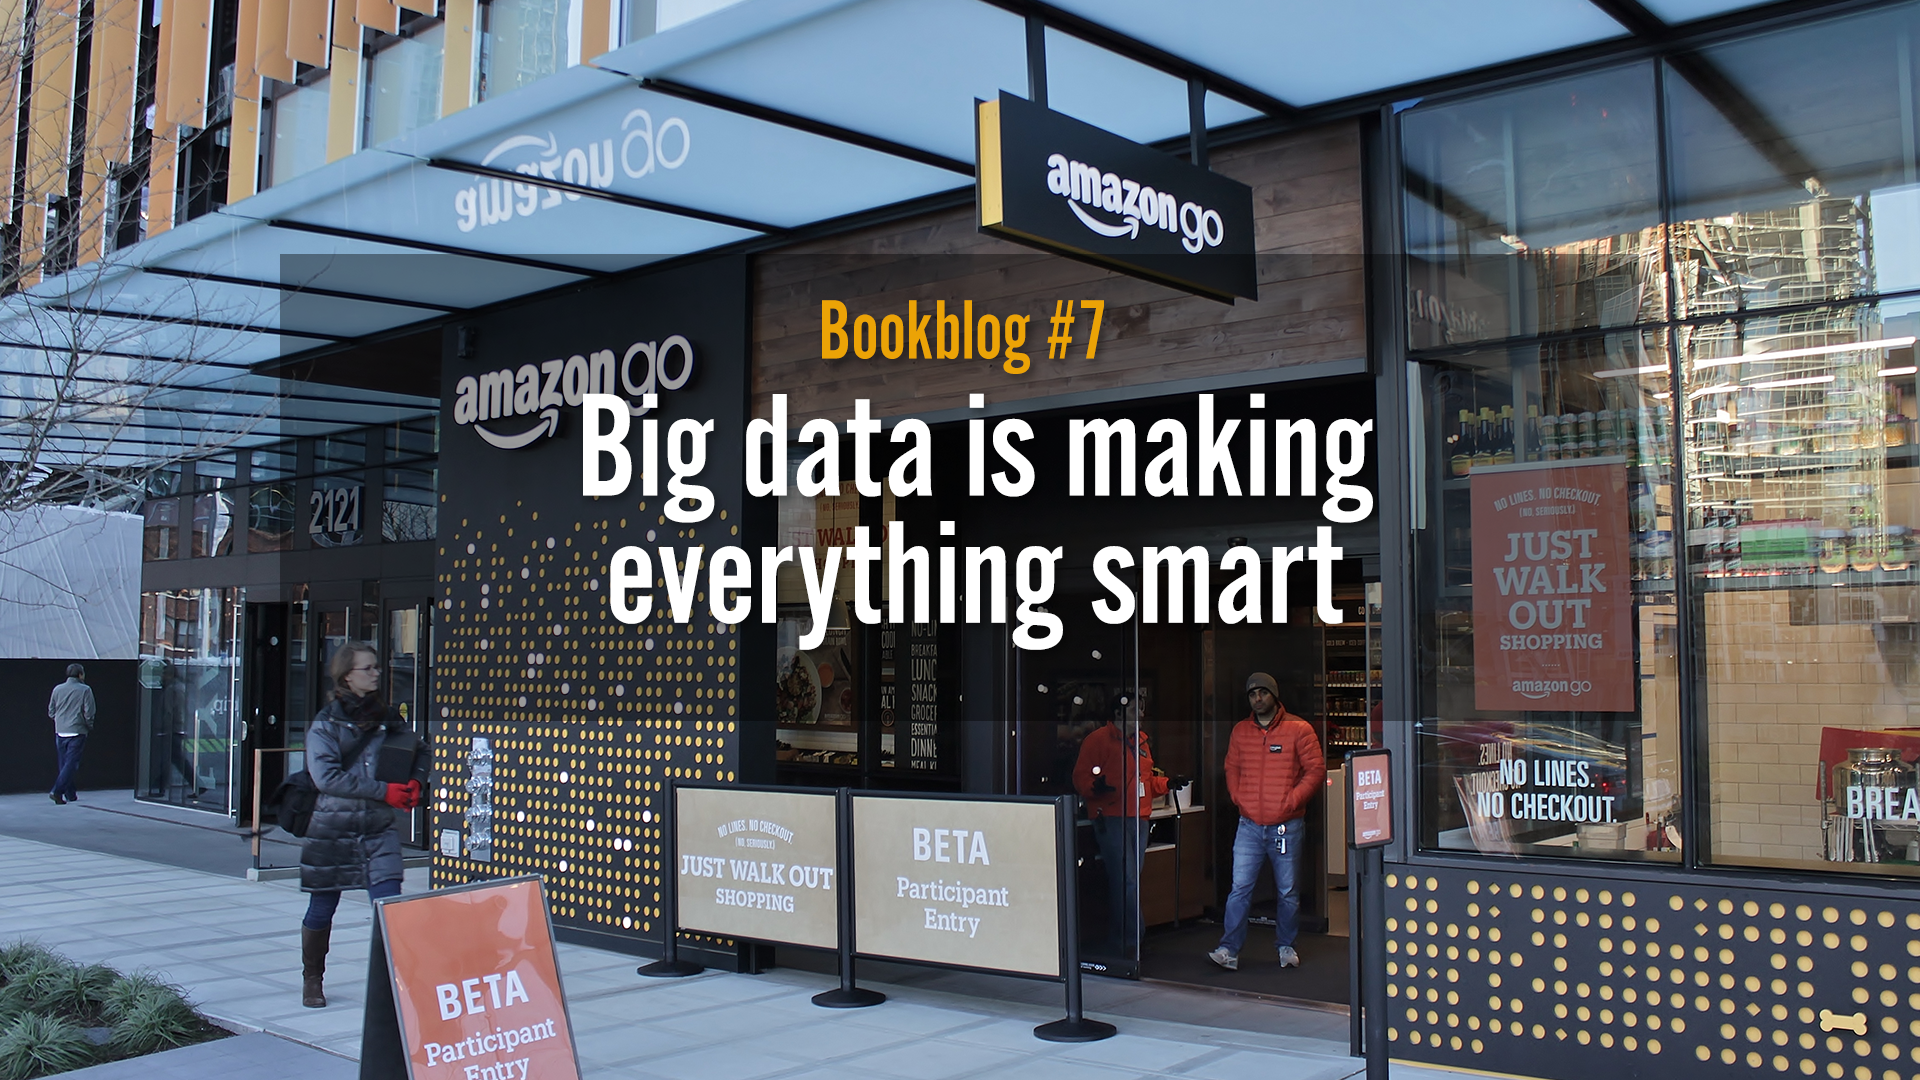 Big data is making everything smart